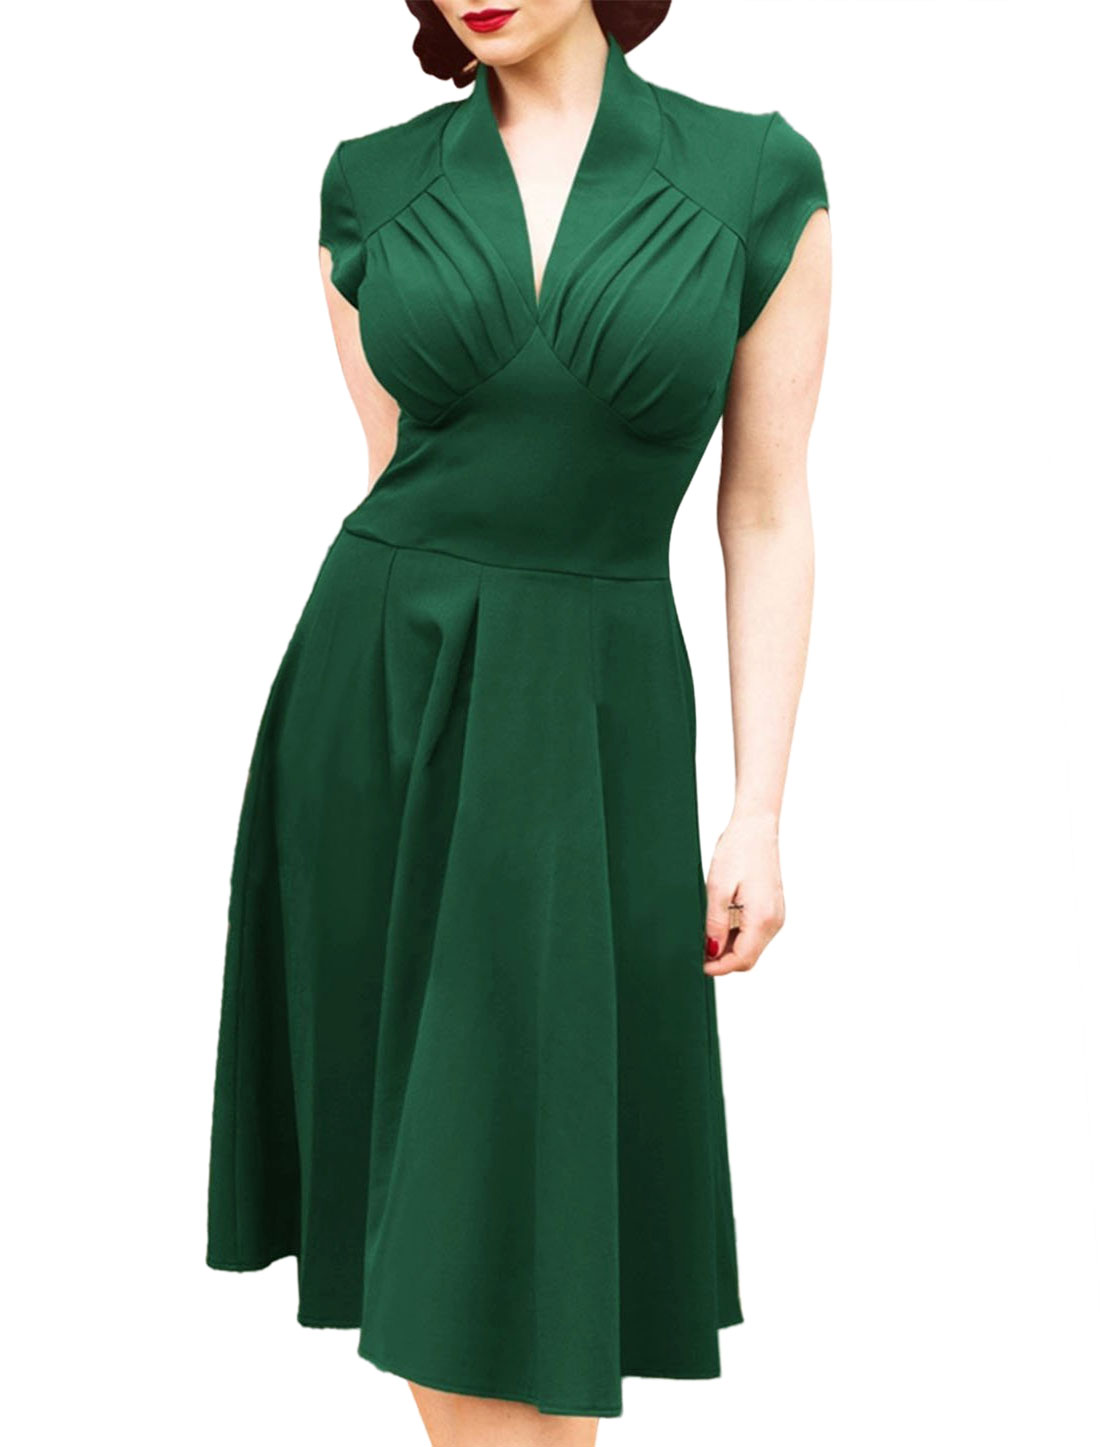 Women V Neck Ruched Cap Sleeves Fit and Flare Dress Green M